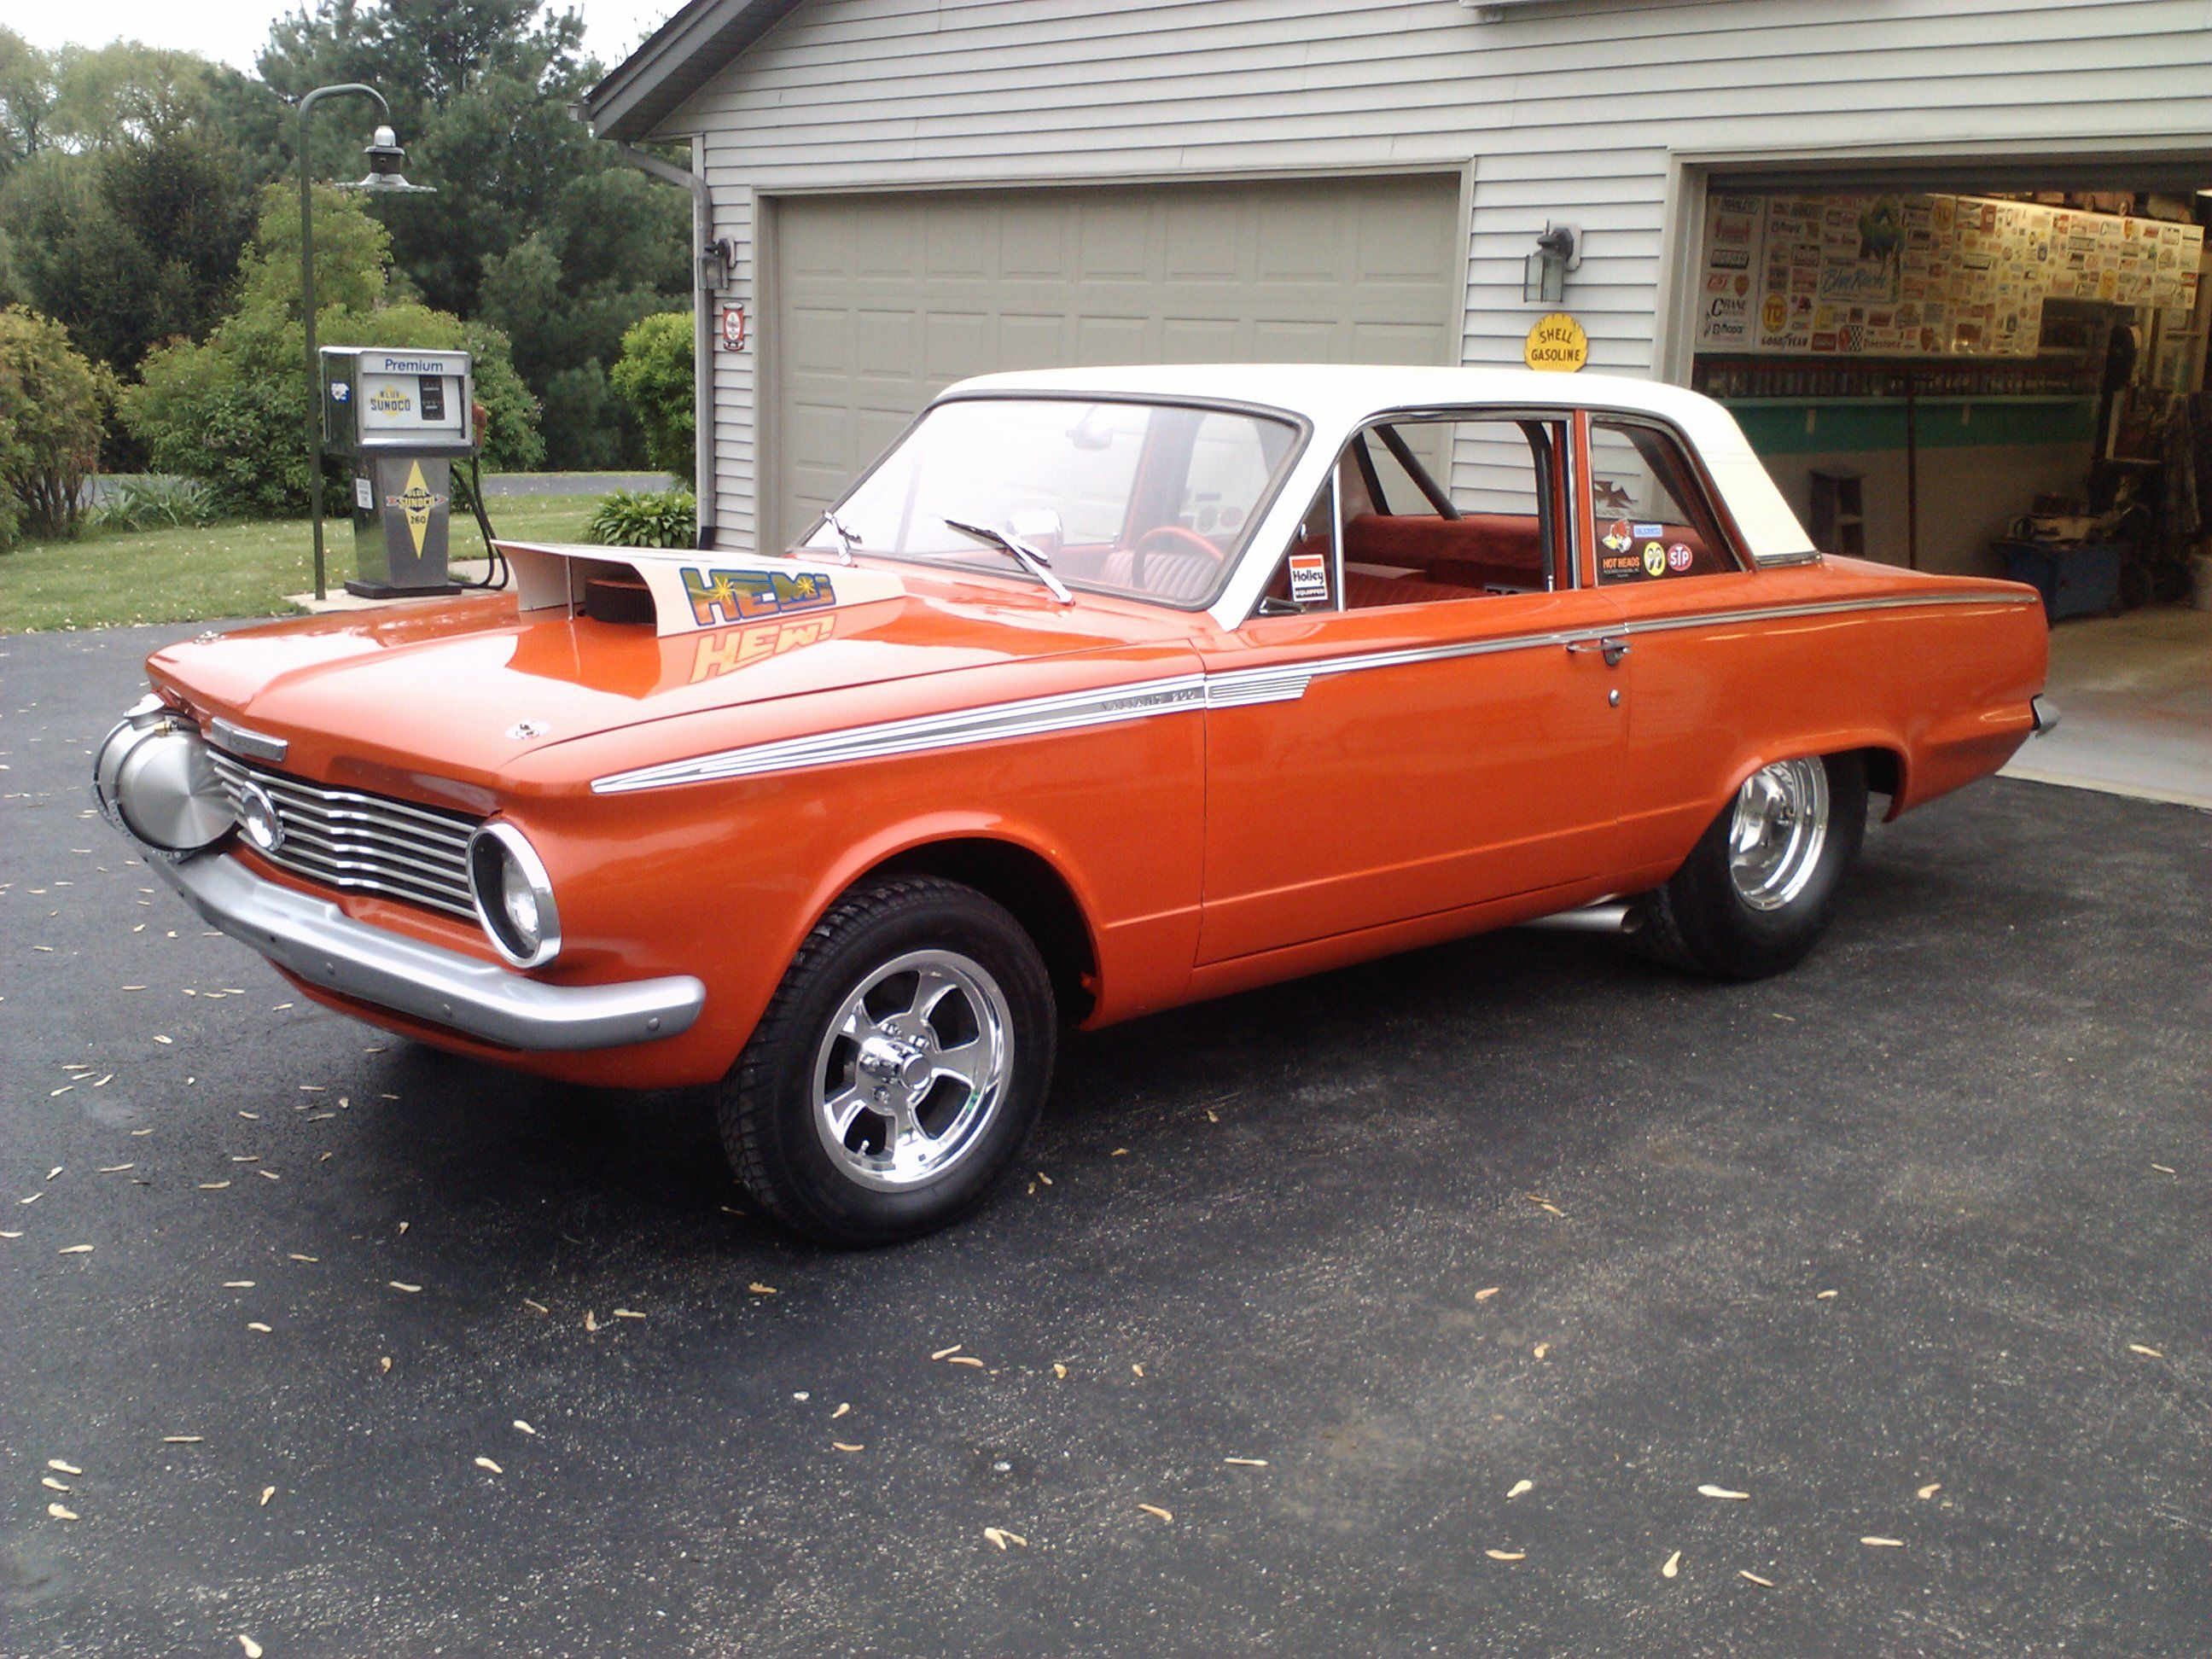 1965 Plymouth Valiant HTMI Maintenance/restoration of old/vintage ...